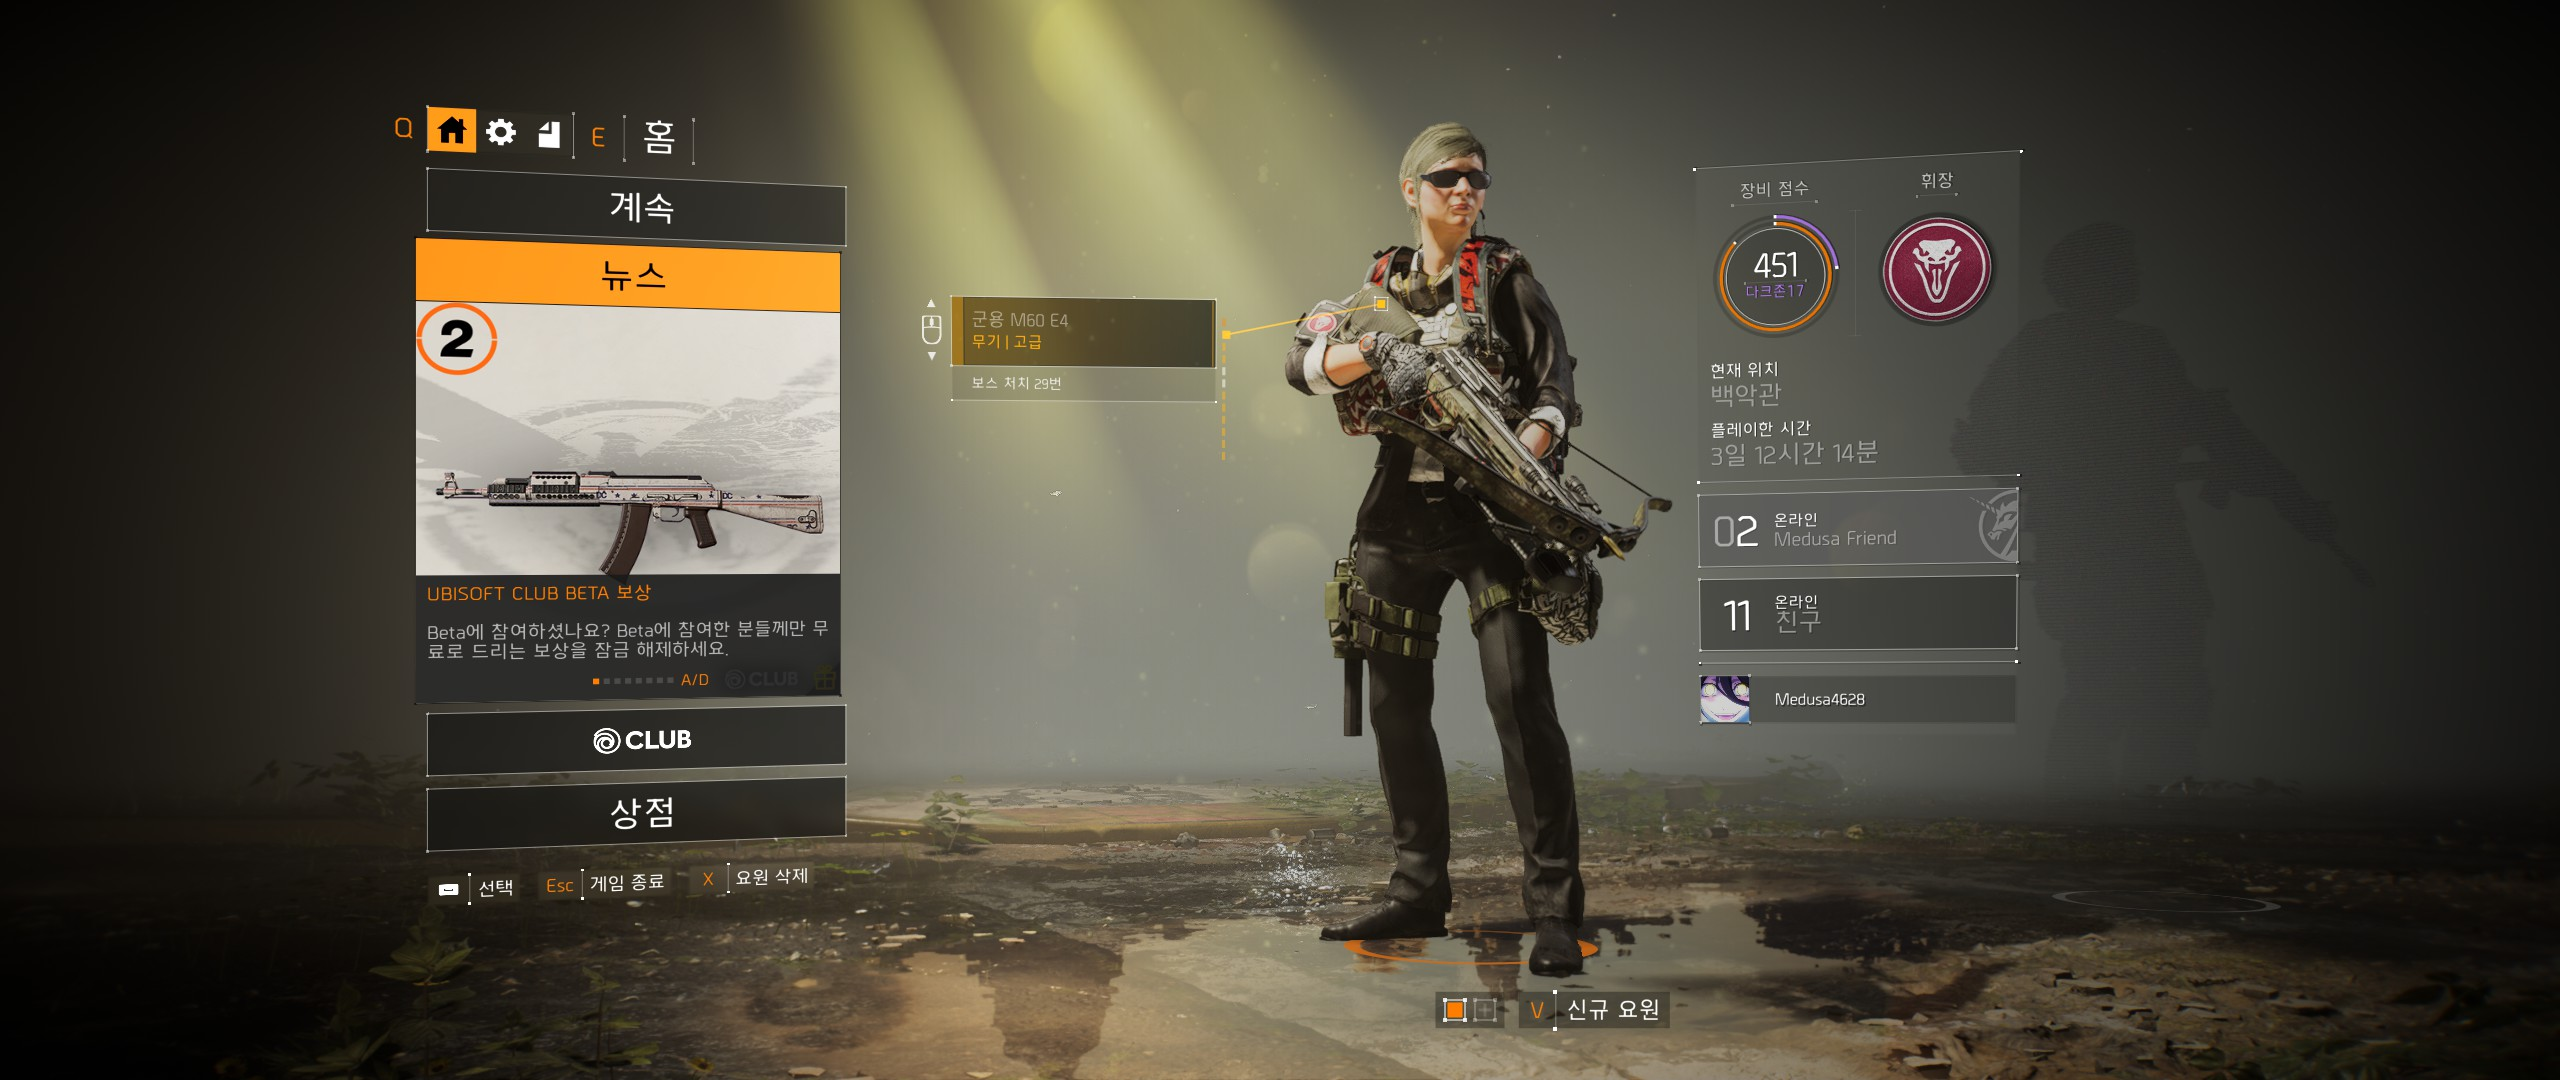 Tom Clancy's The Division® 22019-3-25-18-39-46.jpg